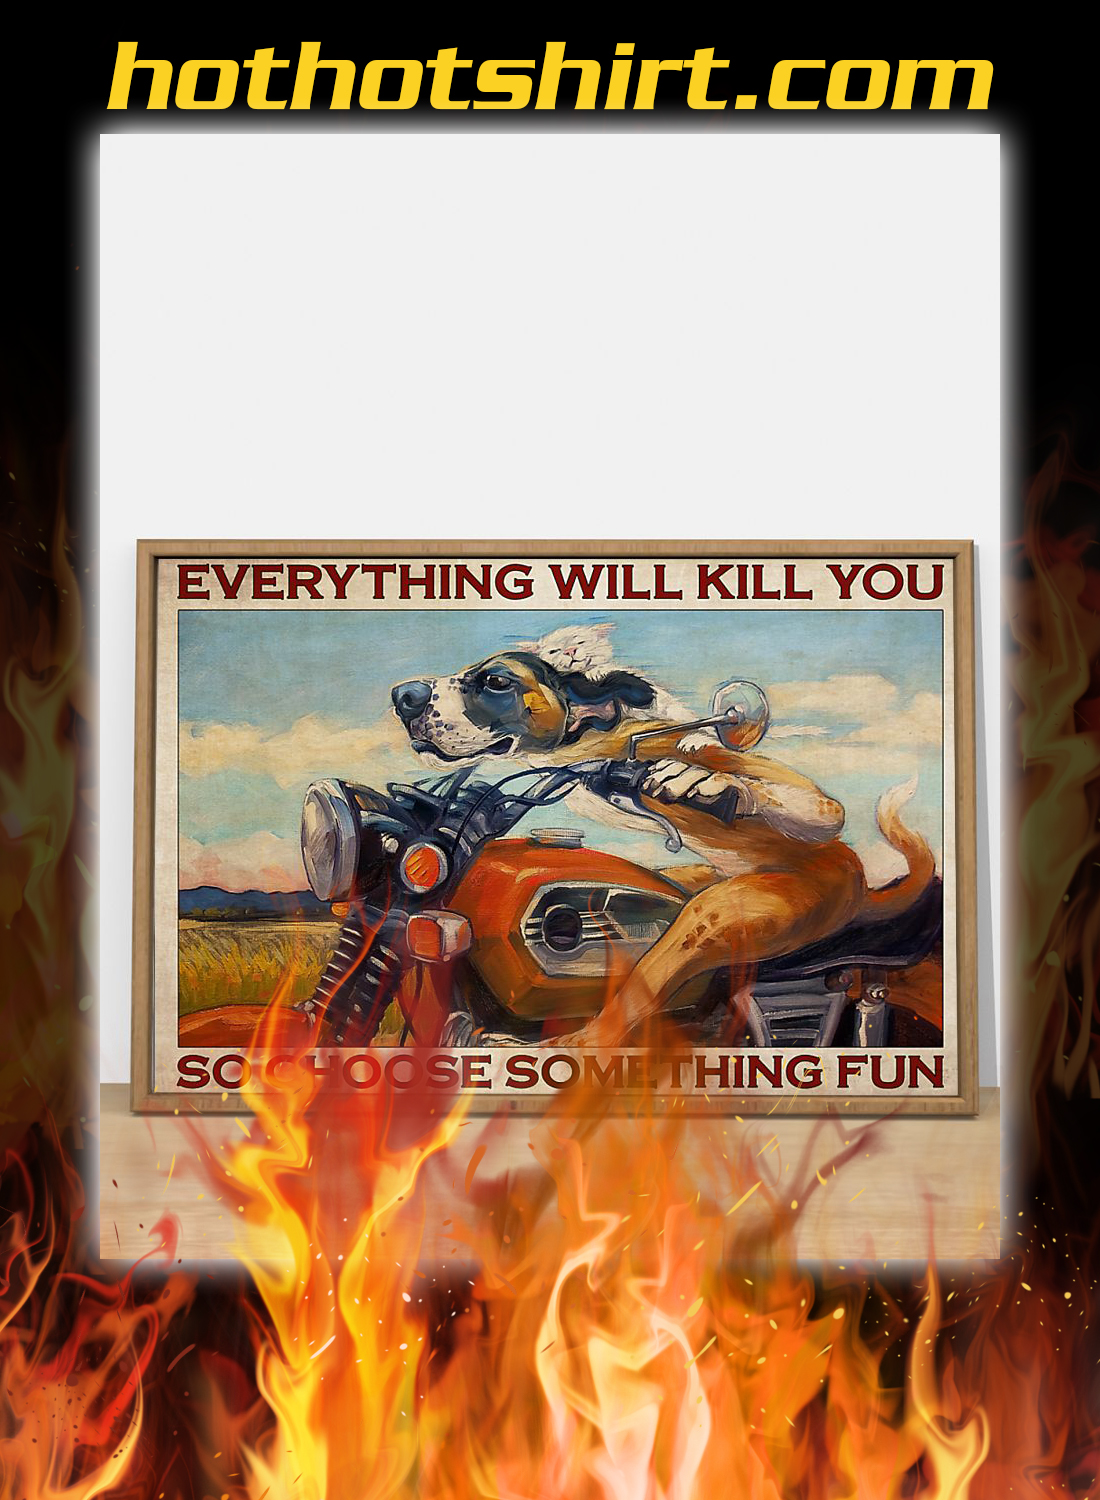 Motorcycle dog and cat everything will kill you so choose something fun poster 1